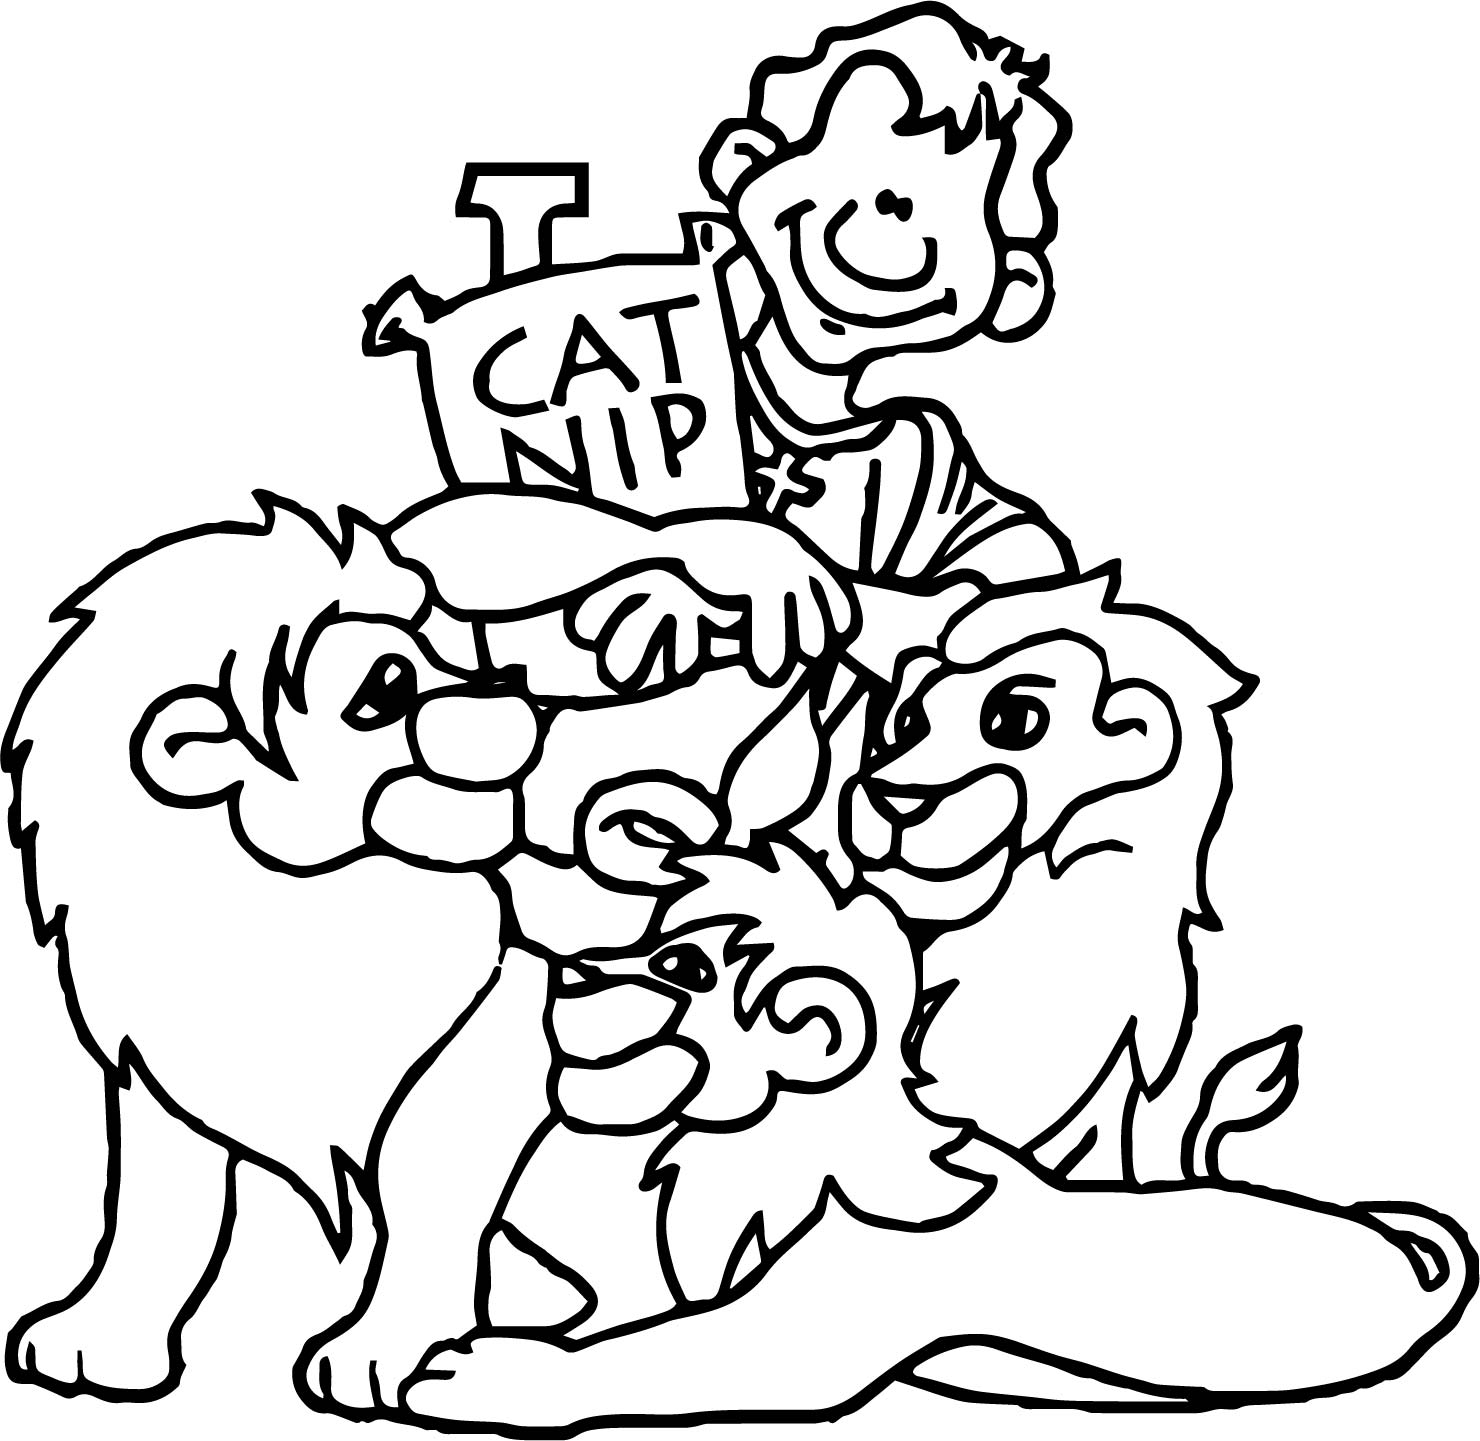 Banner Rome Christianity Cat Nip Coloring Page